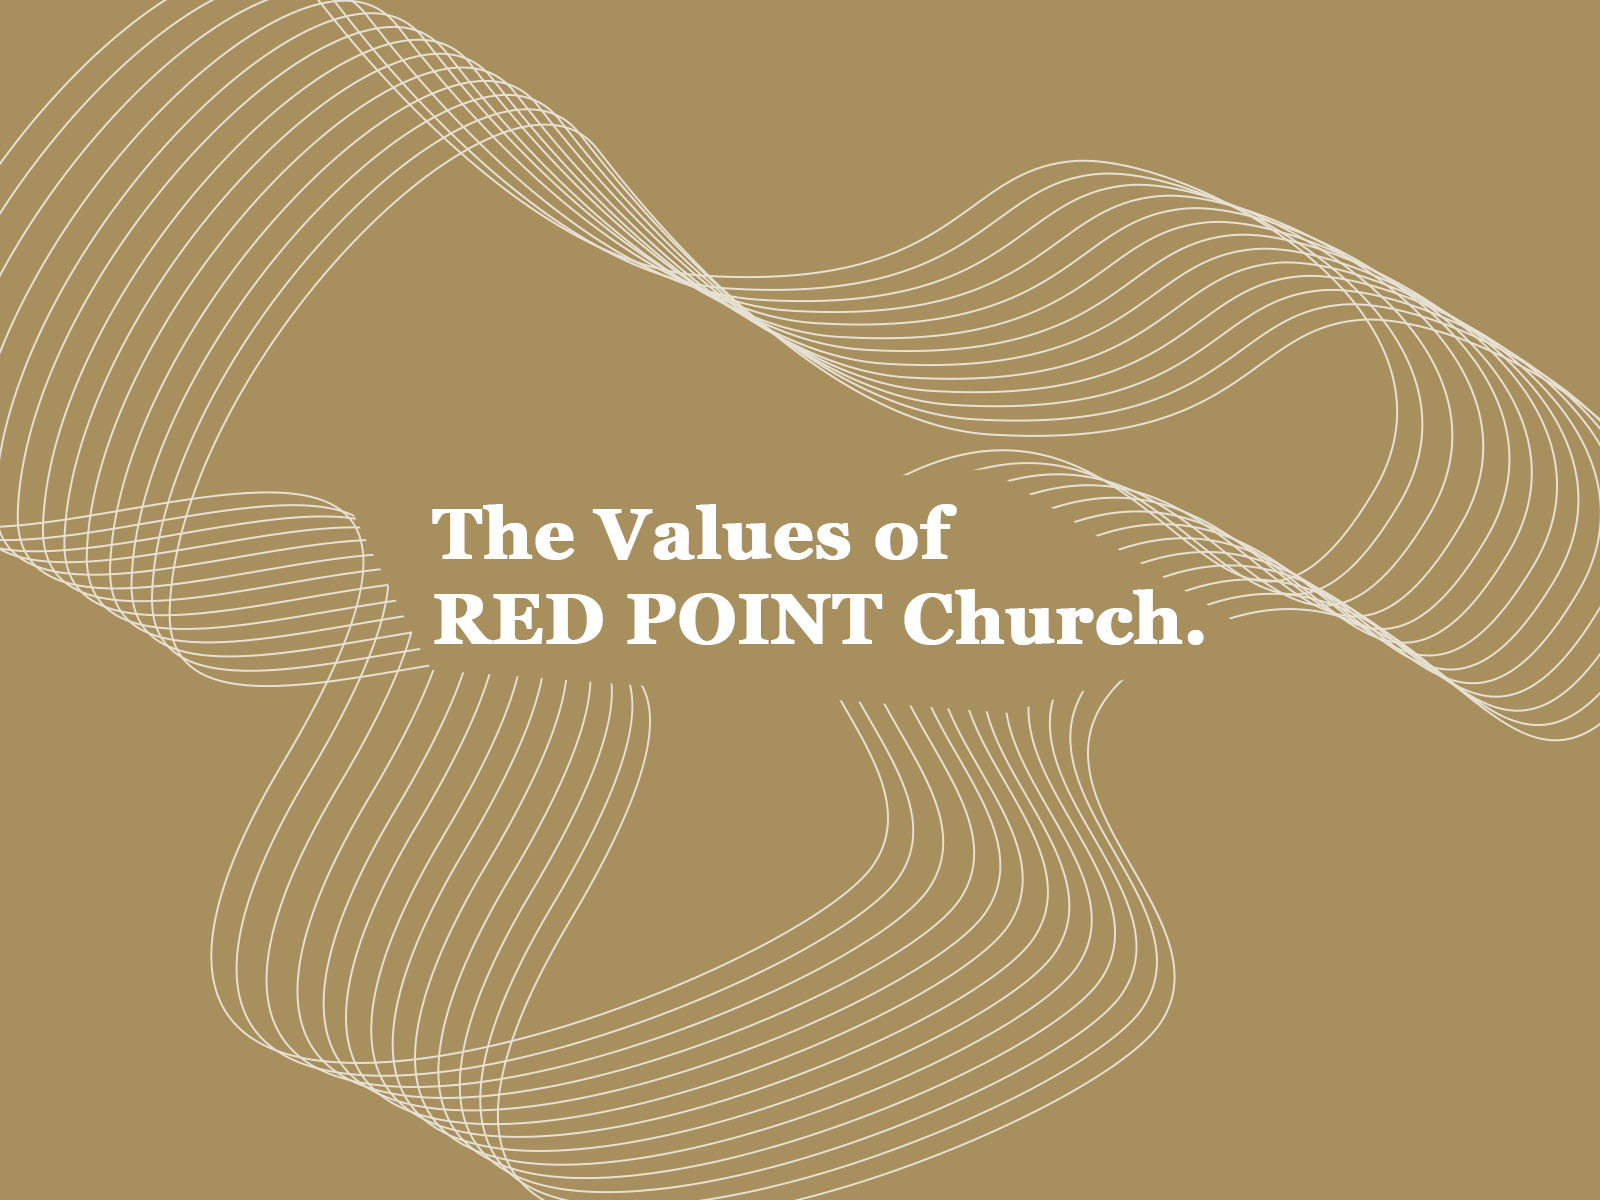 The Values of RED POINT 2019.jpg